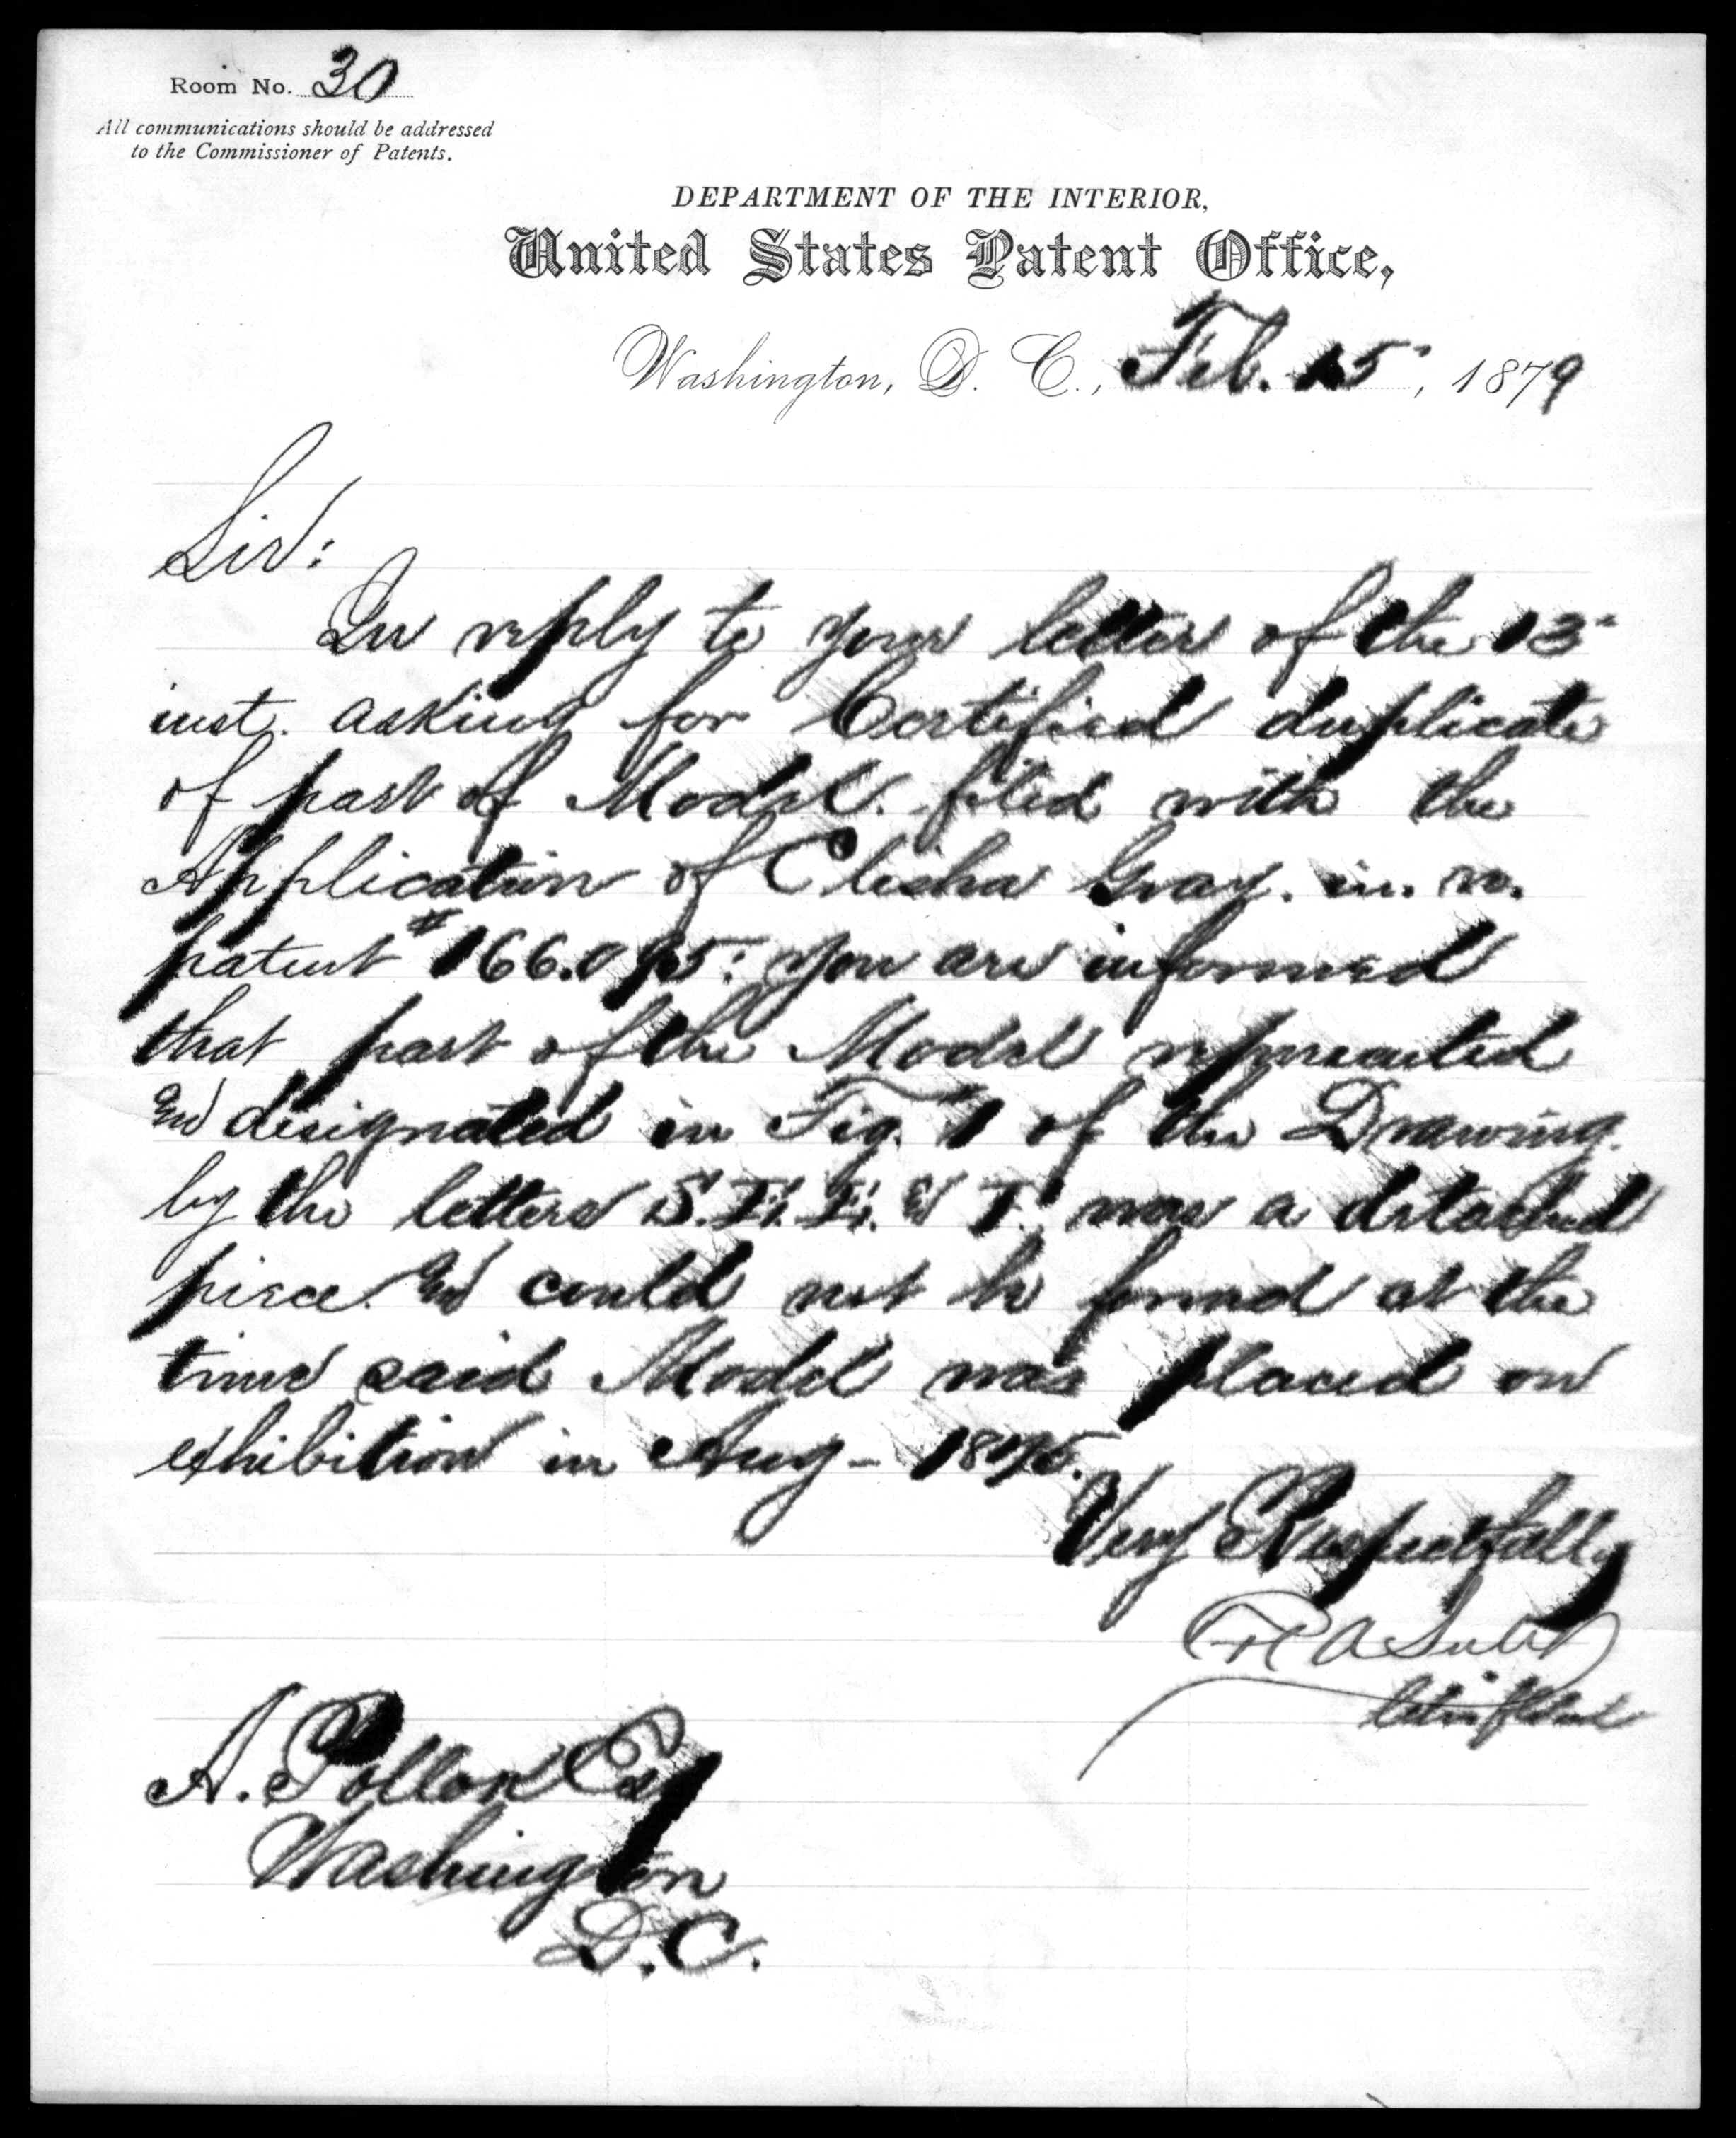 2454x3022 Letter From H. A. Sully To Anthony Pollok, February 15, 1879